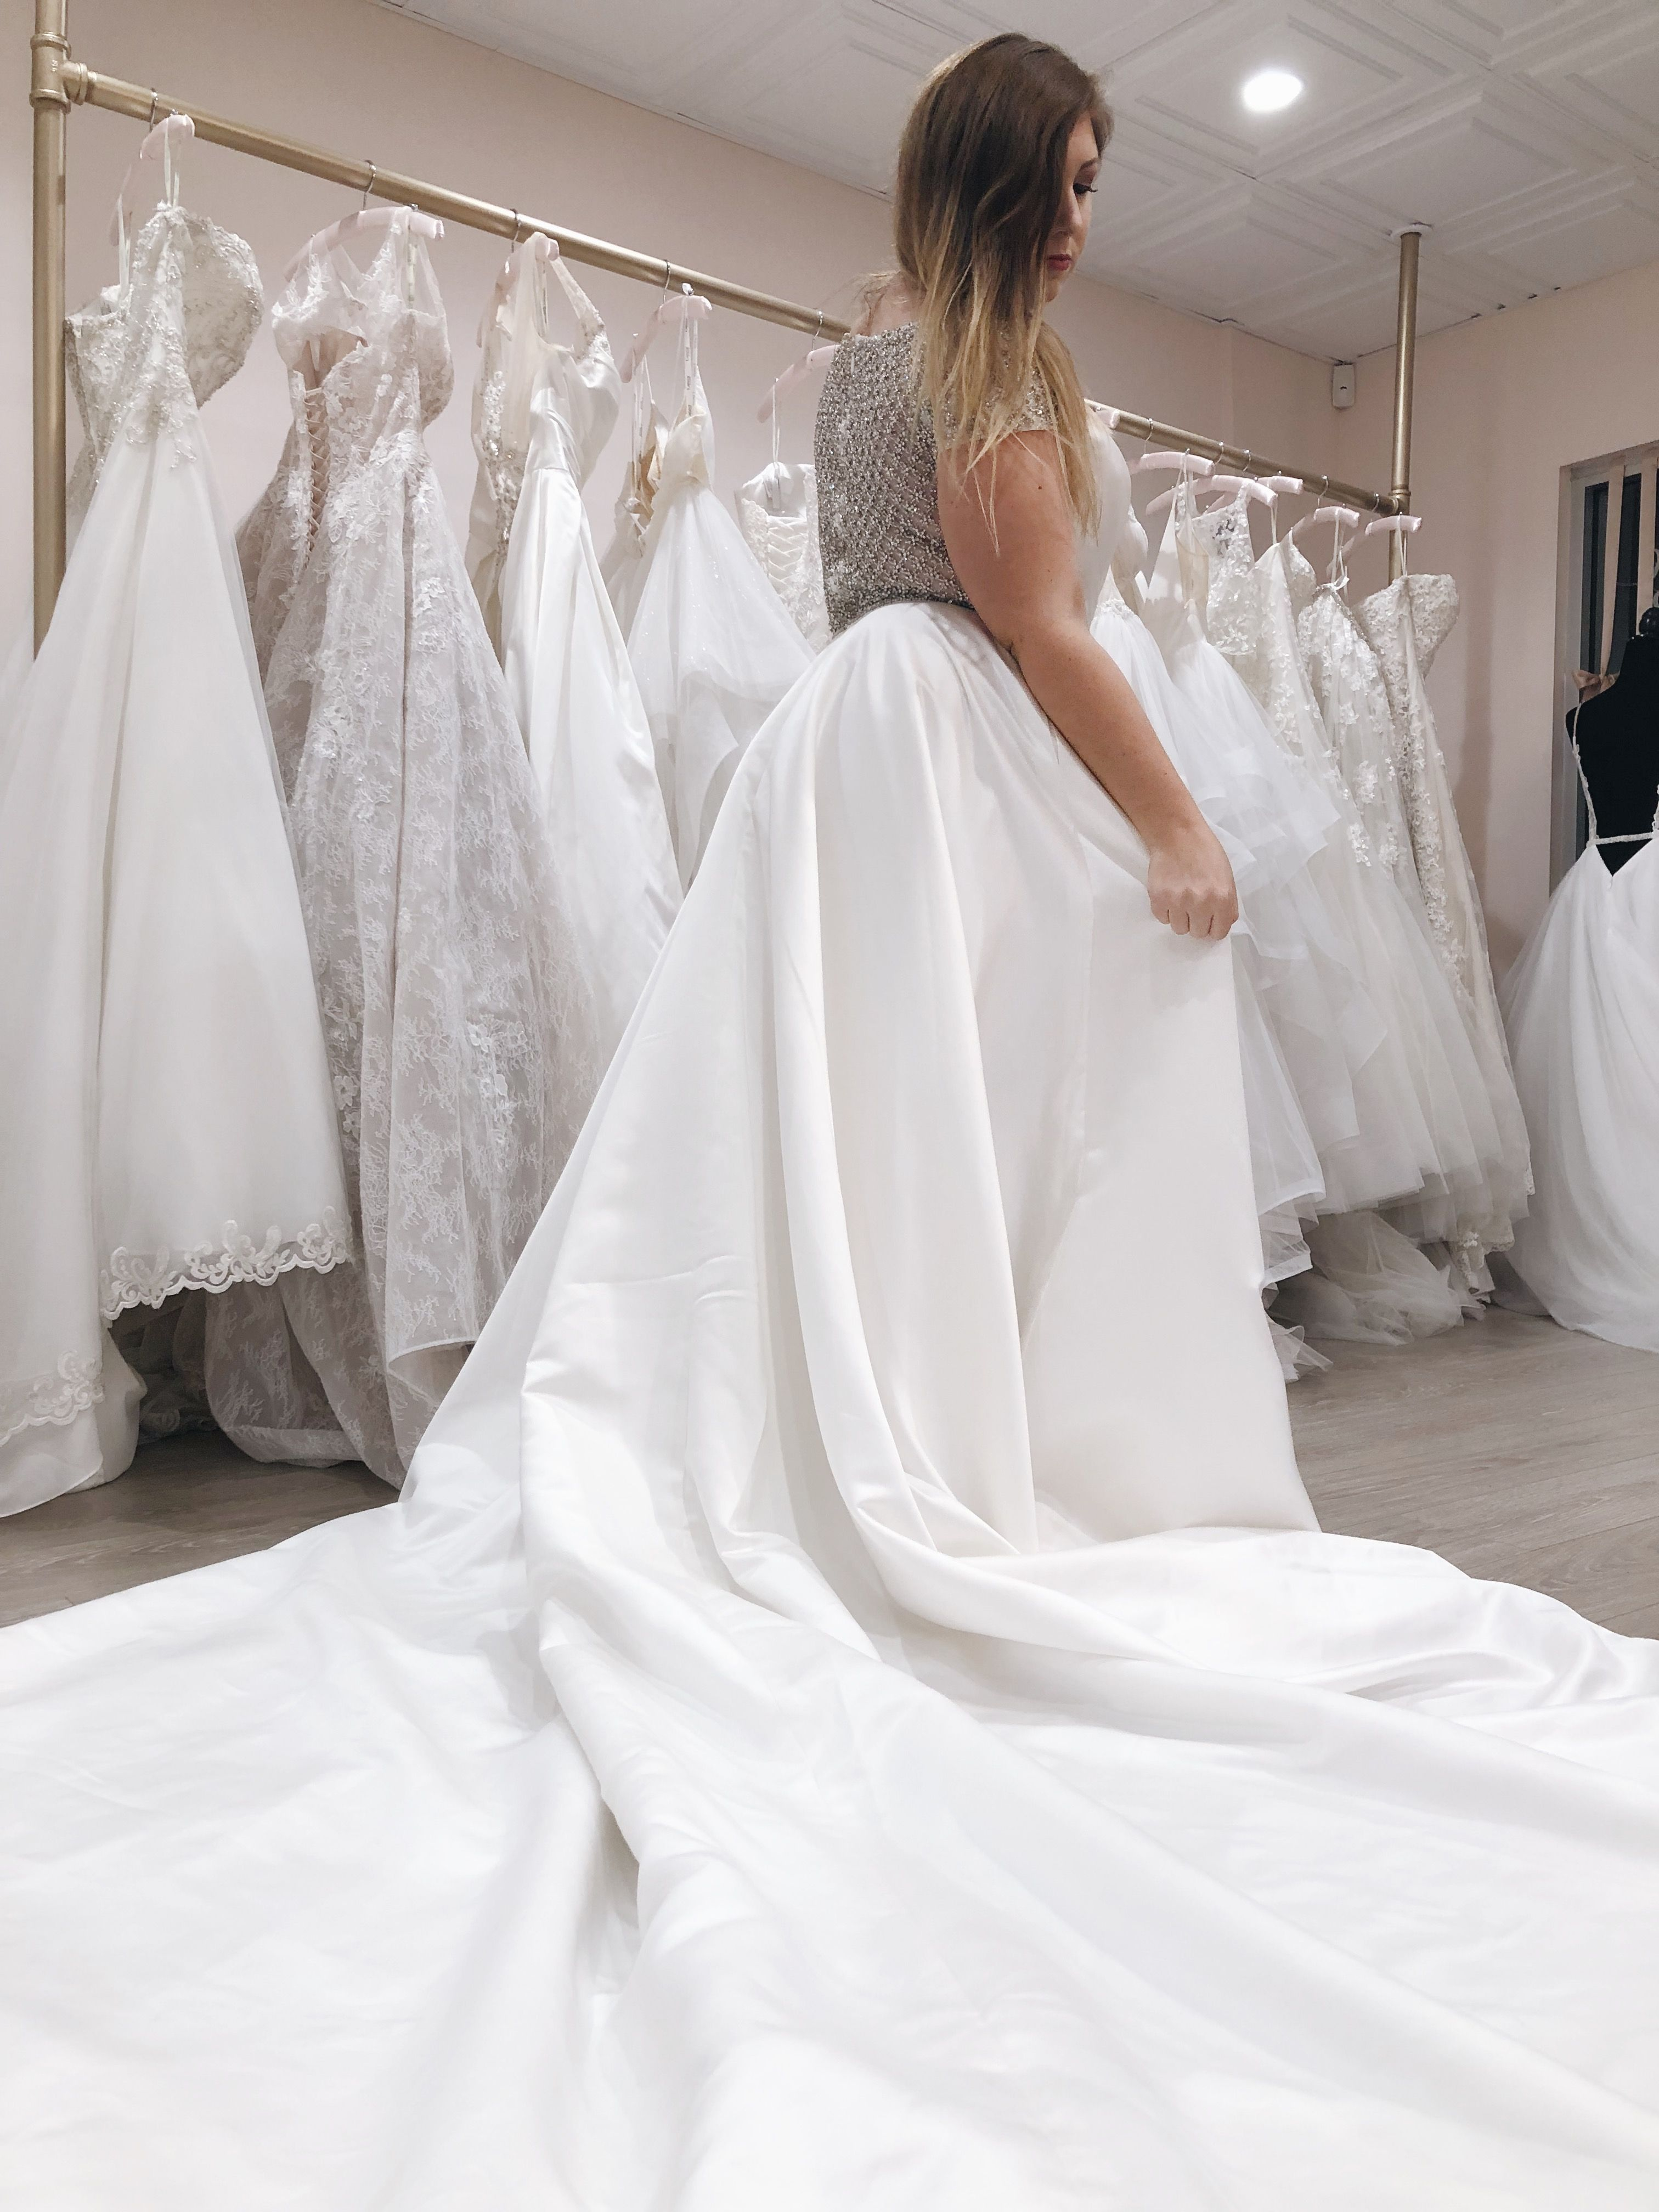 Breathtaking Plus Size Wedding Gown With Dramatic Train And Sophisticated Design Located In Fernandi Plus Size Wedding Gowns Bridal Boutique Plus Size Wedding [ 4032 x 3024 Pixel ]